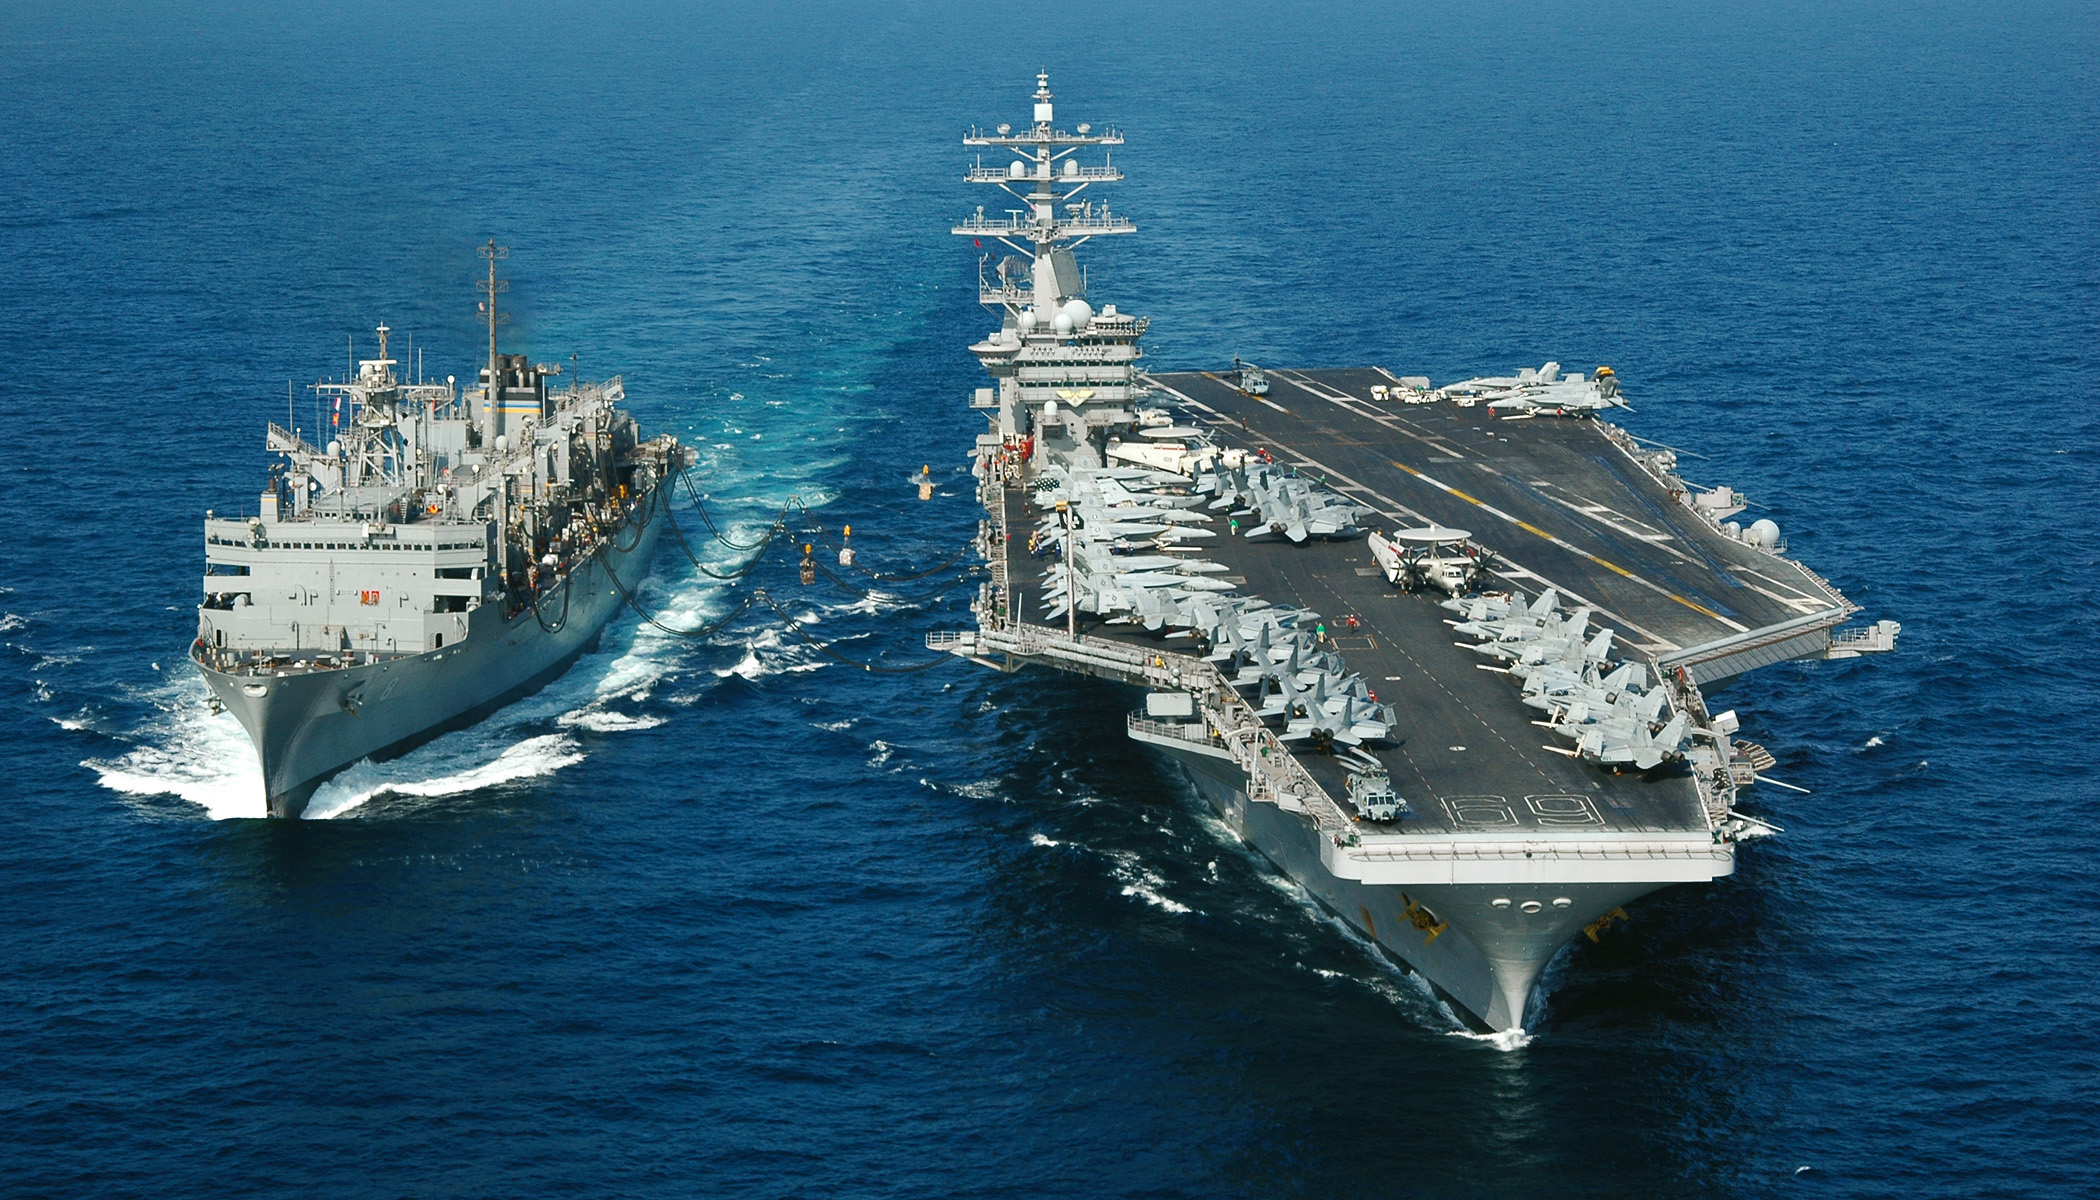 The fast combat support ship USNS Arctic (T-AOE 8), left, conducts an underway replenishment with the Nimitz-class aircraft carrier USS Dwight D. Eisenhower (CVN 69) Jan. 15, 2007. Eisenhower and embarked Carrier Air Wing 7 are on a regularly scheduled deployment in the U.S. Naval Forces Central Command area of responsibility in support of maritime security operations. (U.S. Navy photo by Mass Communication Specialist 2nd Class Miguel Angel Contreras) (Released)